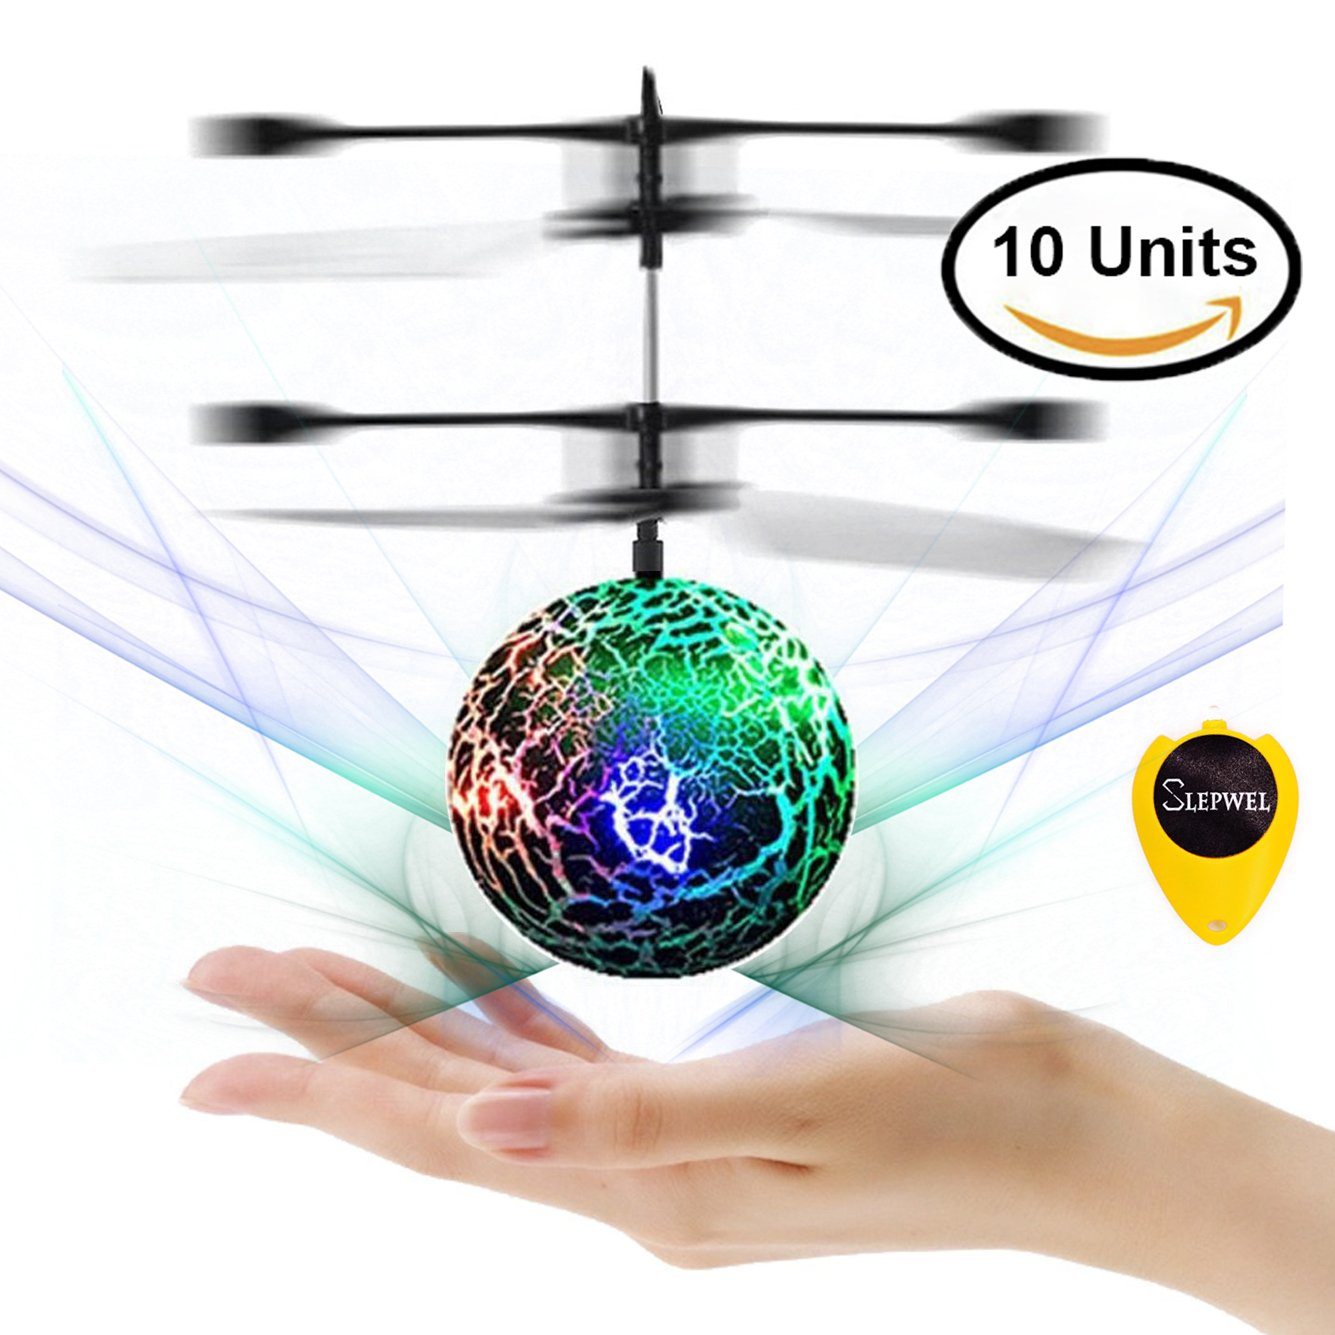 RC Flying Ball Helicopter, Slepwel Infrared Induction Flying Toys Built-in Rainbow Shinning LED Lighting for Boys and Girls, Teenagers Colorful Flyings for Kids Toy -10 Units (Green)